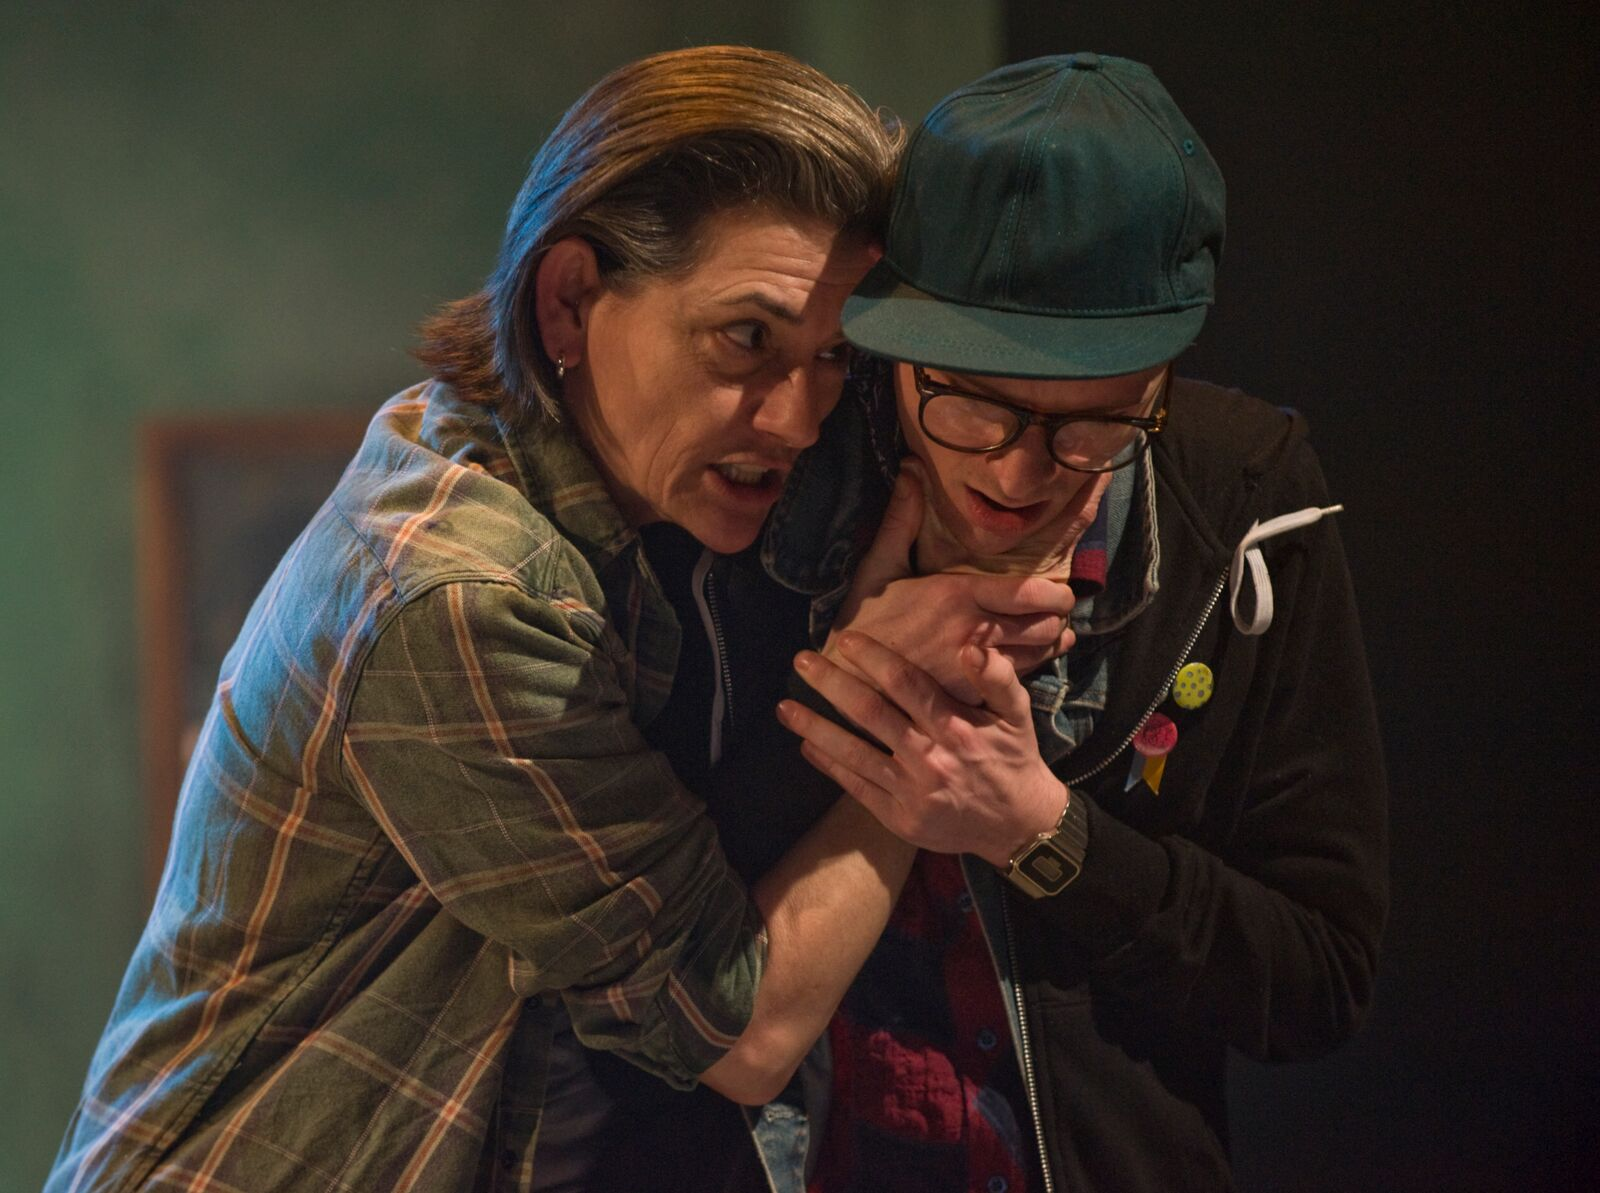 L-R   Janet Ulrich Brooks and Matthew Sherbach in the About Face Theatre Production directed by Bonnie Metzgar.Costumes by David Hyman, Set Design by Tom Burch, Lighting Design by Lee Fiskness.  Photo by Michael Brosilow.